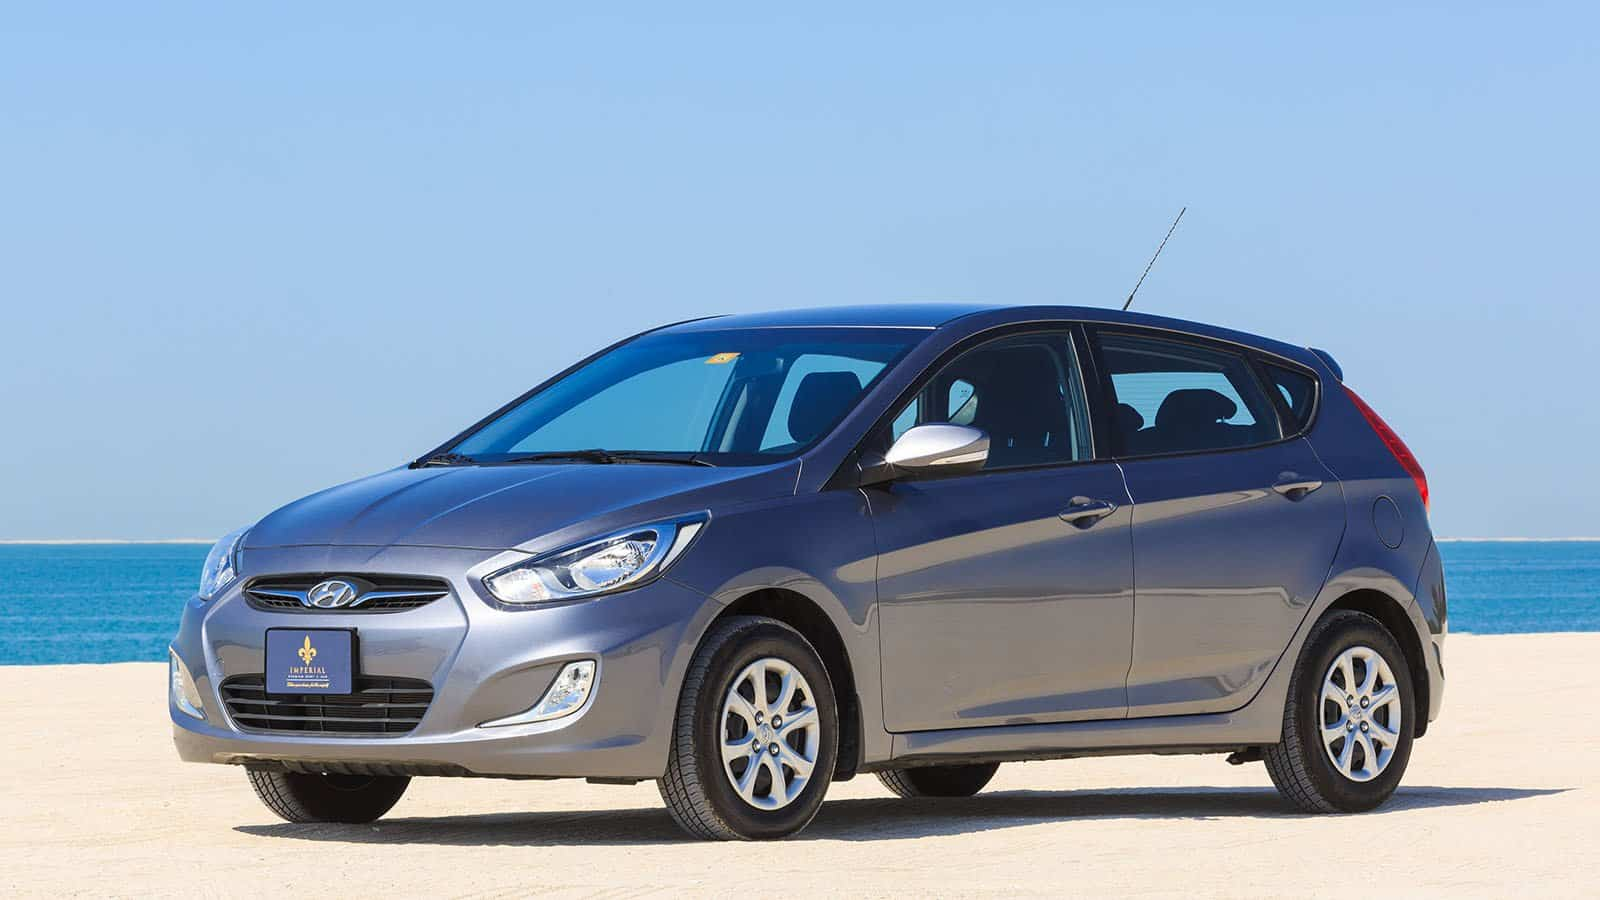 Hyundai Accent Hatchback Rent Dubai